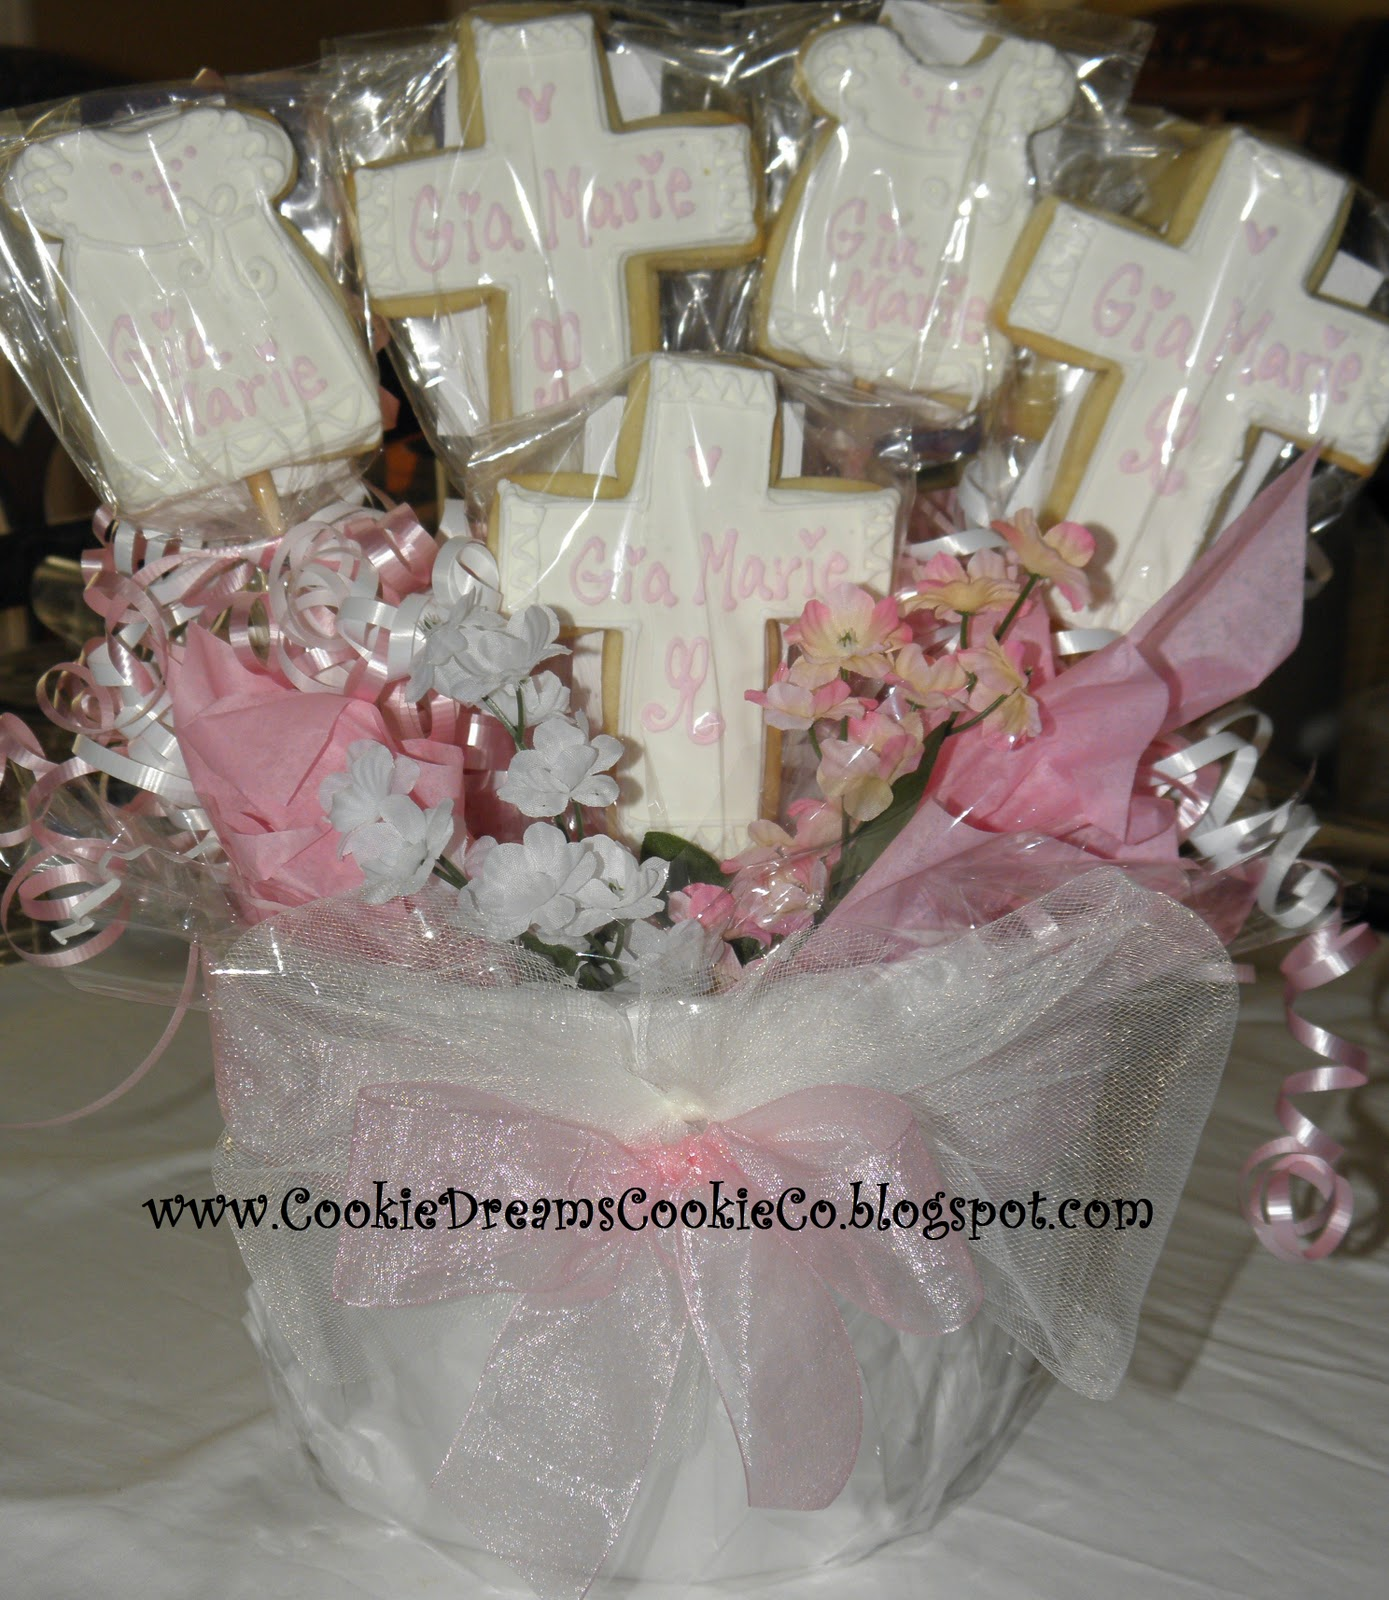 Boy baptism centerpieces on pinterest baptism party baptism centerpieces and baptism decorations - Decorations for a baptism ...